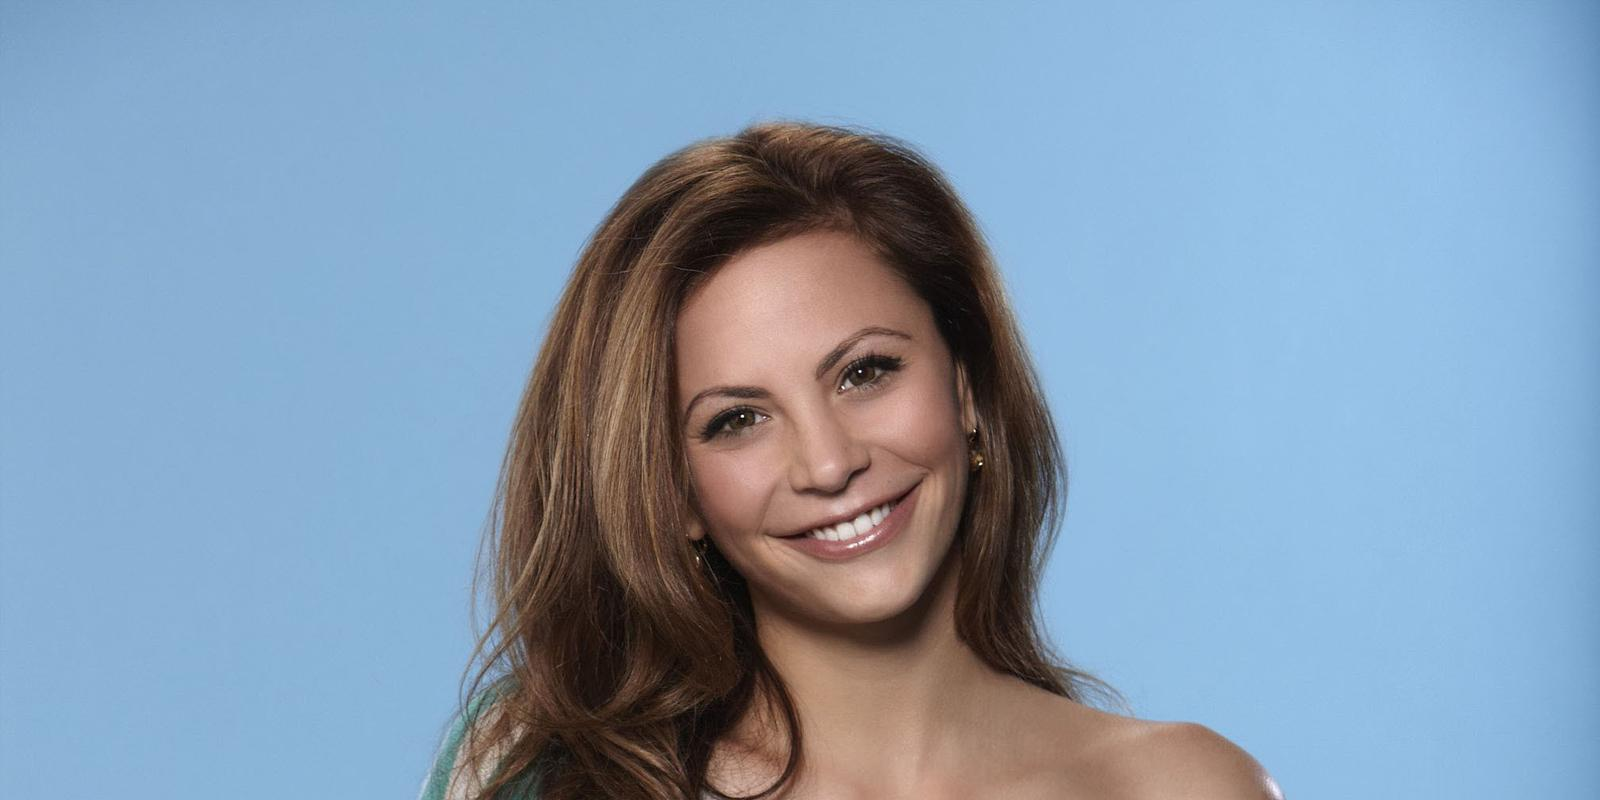 who is gia from the bachelor pad dating Gia allemand's boyfriend allemand became a reality tv star after becoming the fan favorite on jake pavelka's season of the bachelor and later on bachelor pad.